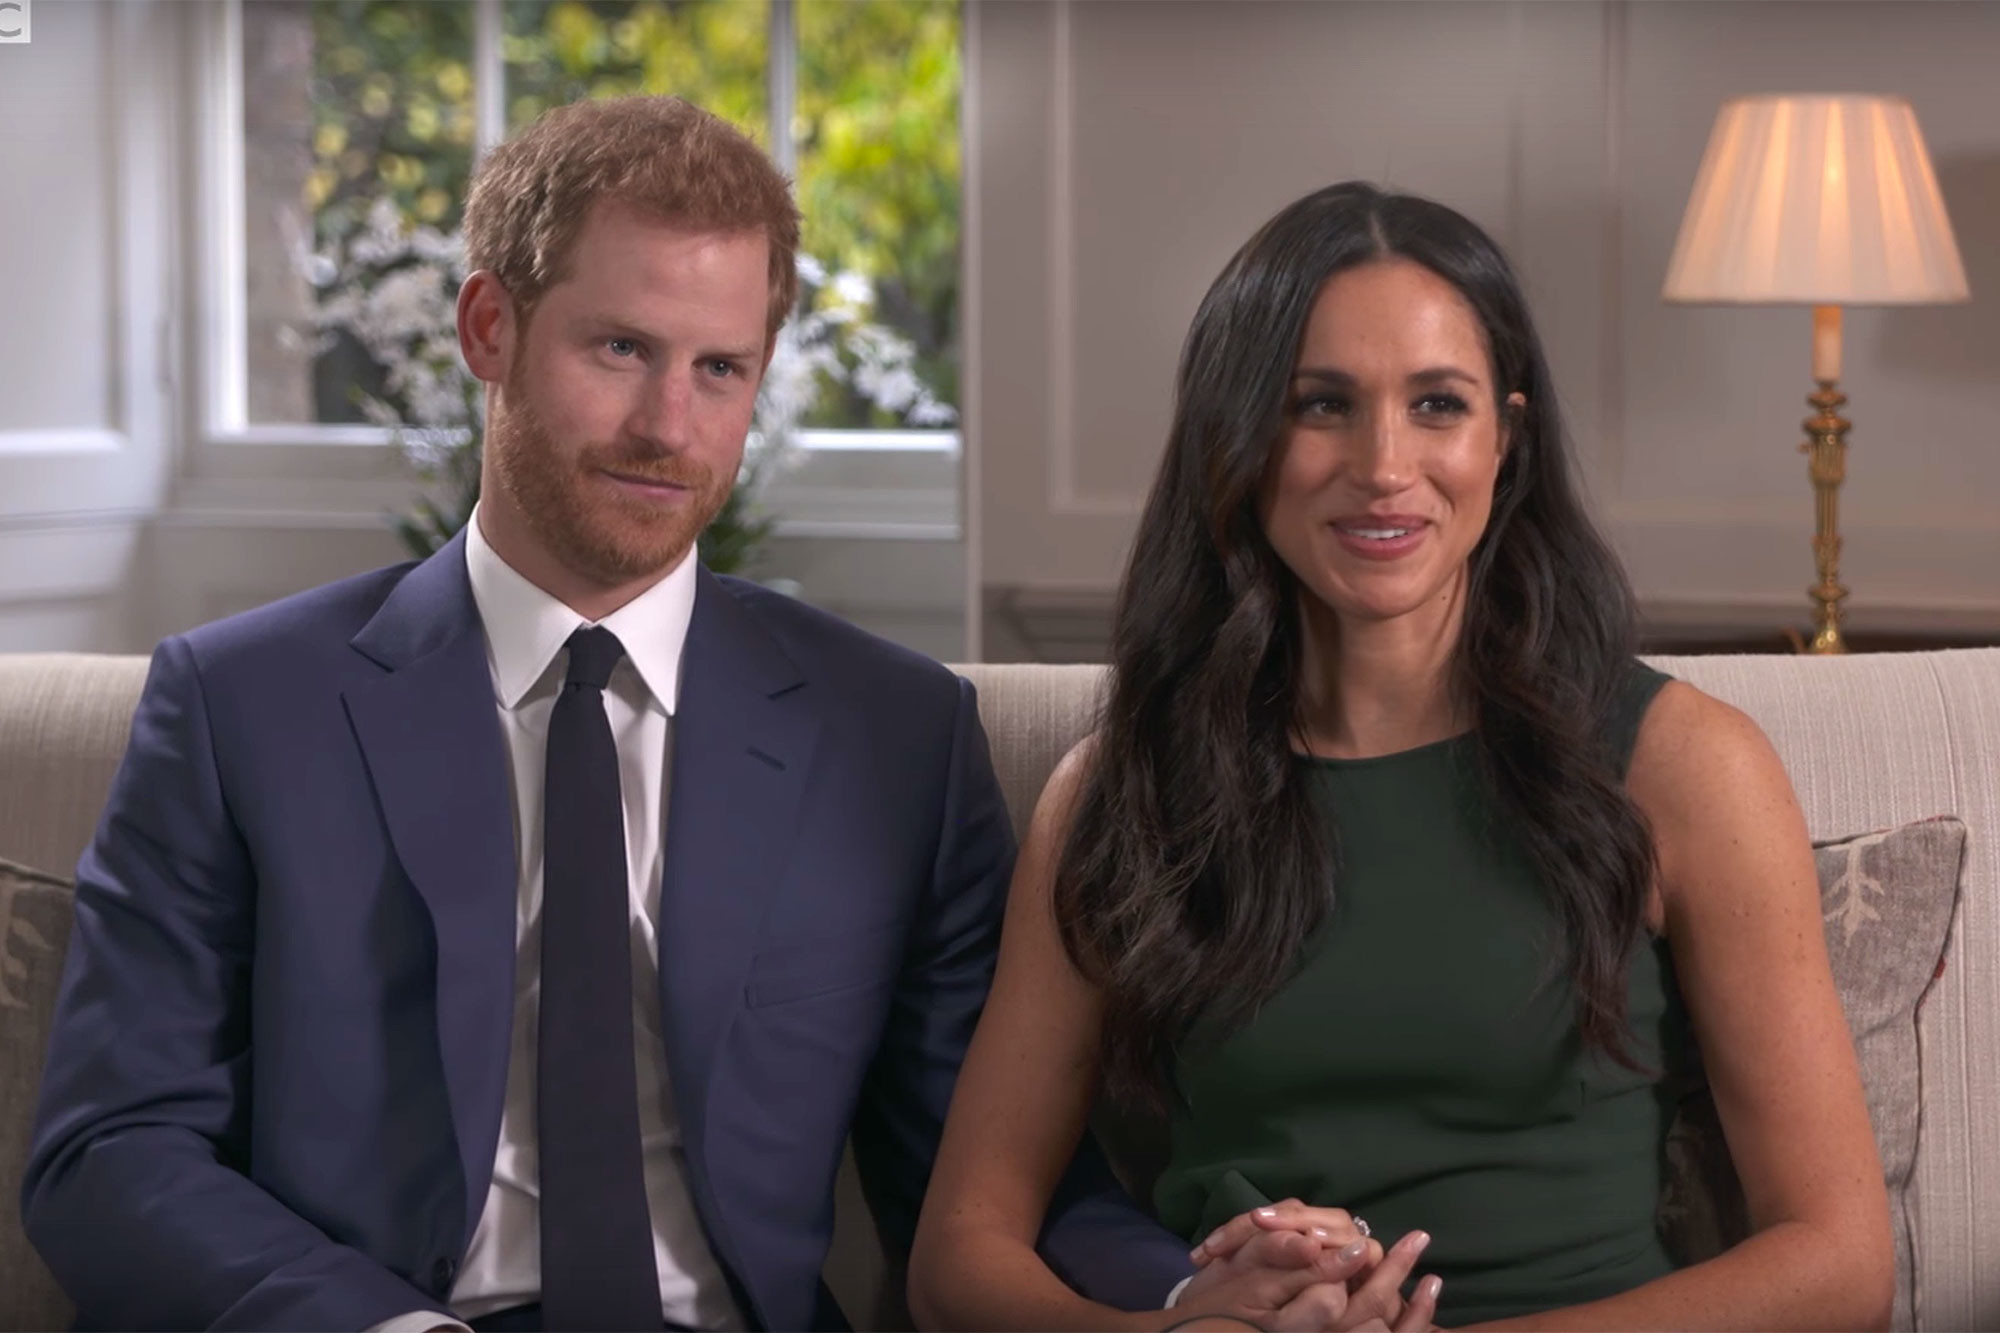 Prince Harry and Meghan Markle Reveal Plans to Start a Family Post-Wedding